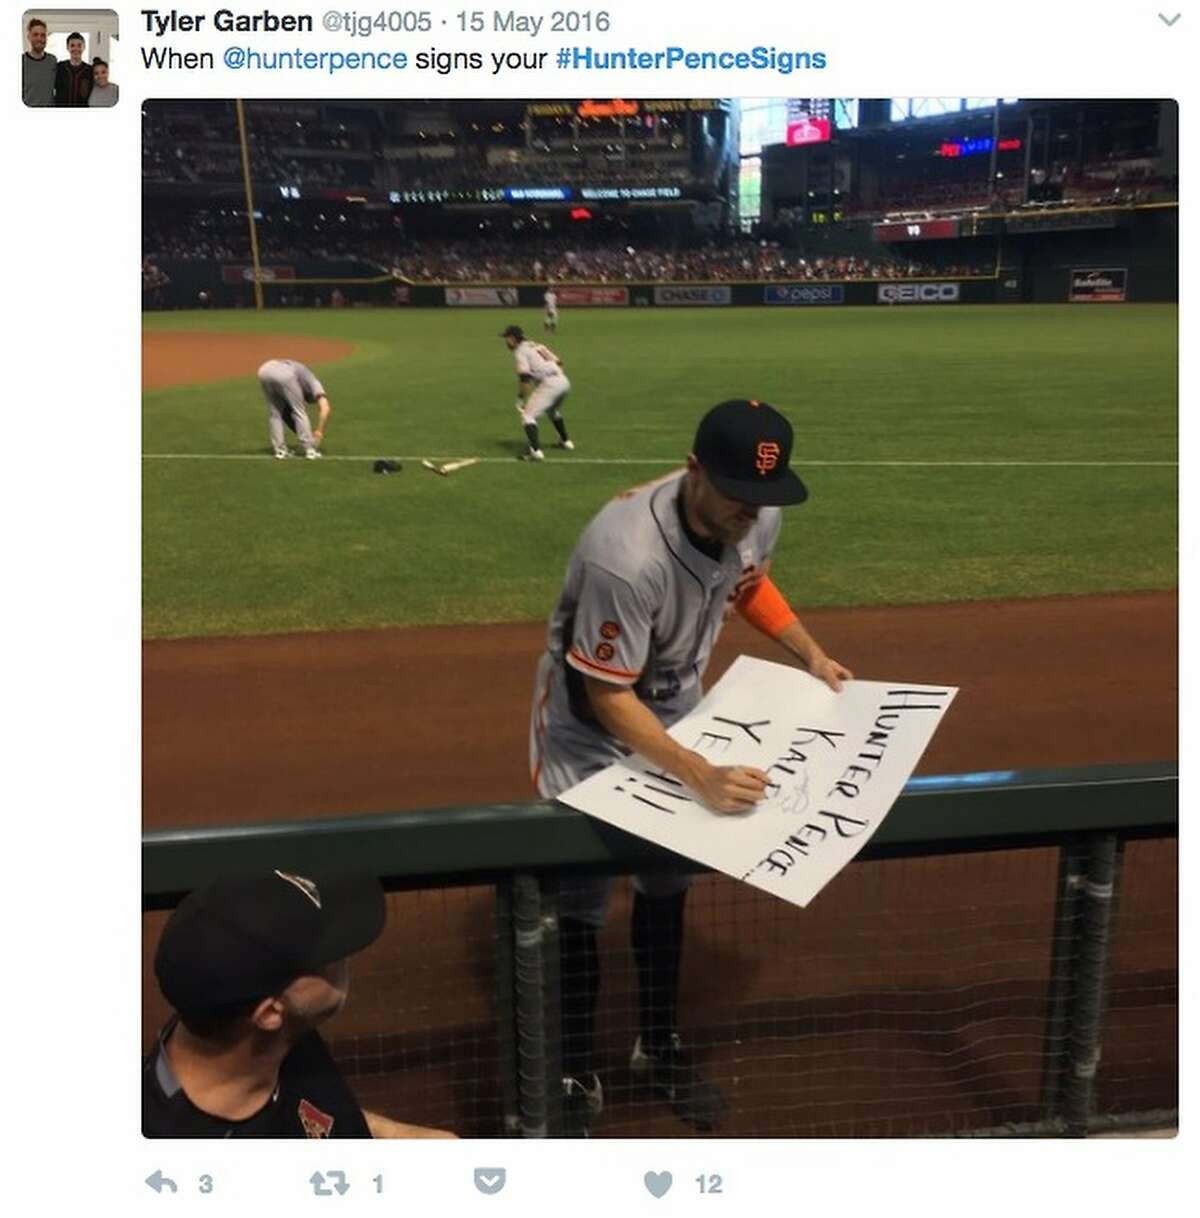 Hunter Pence, who inspired hundreds of quirky fan signs and #hunterpencesigns tweets since joining the Giants, autographs one of the signs at AT&T Park. See some of the best messages for the right fielderin the following gallery.